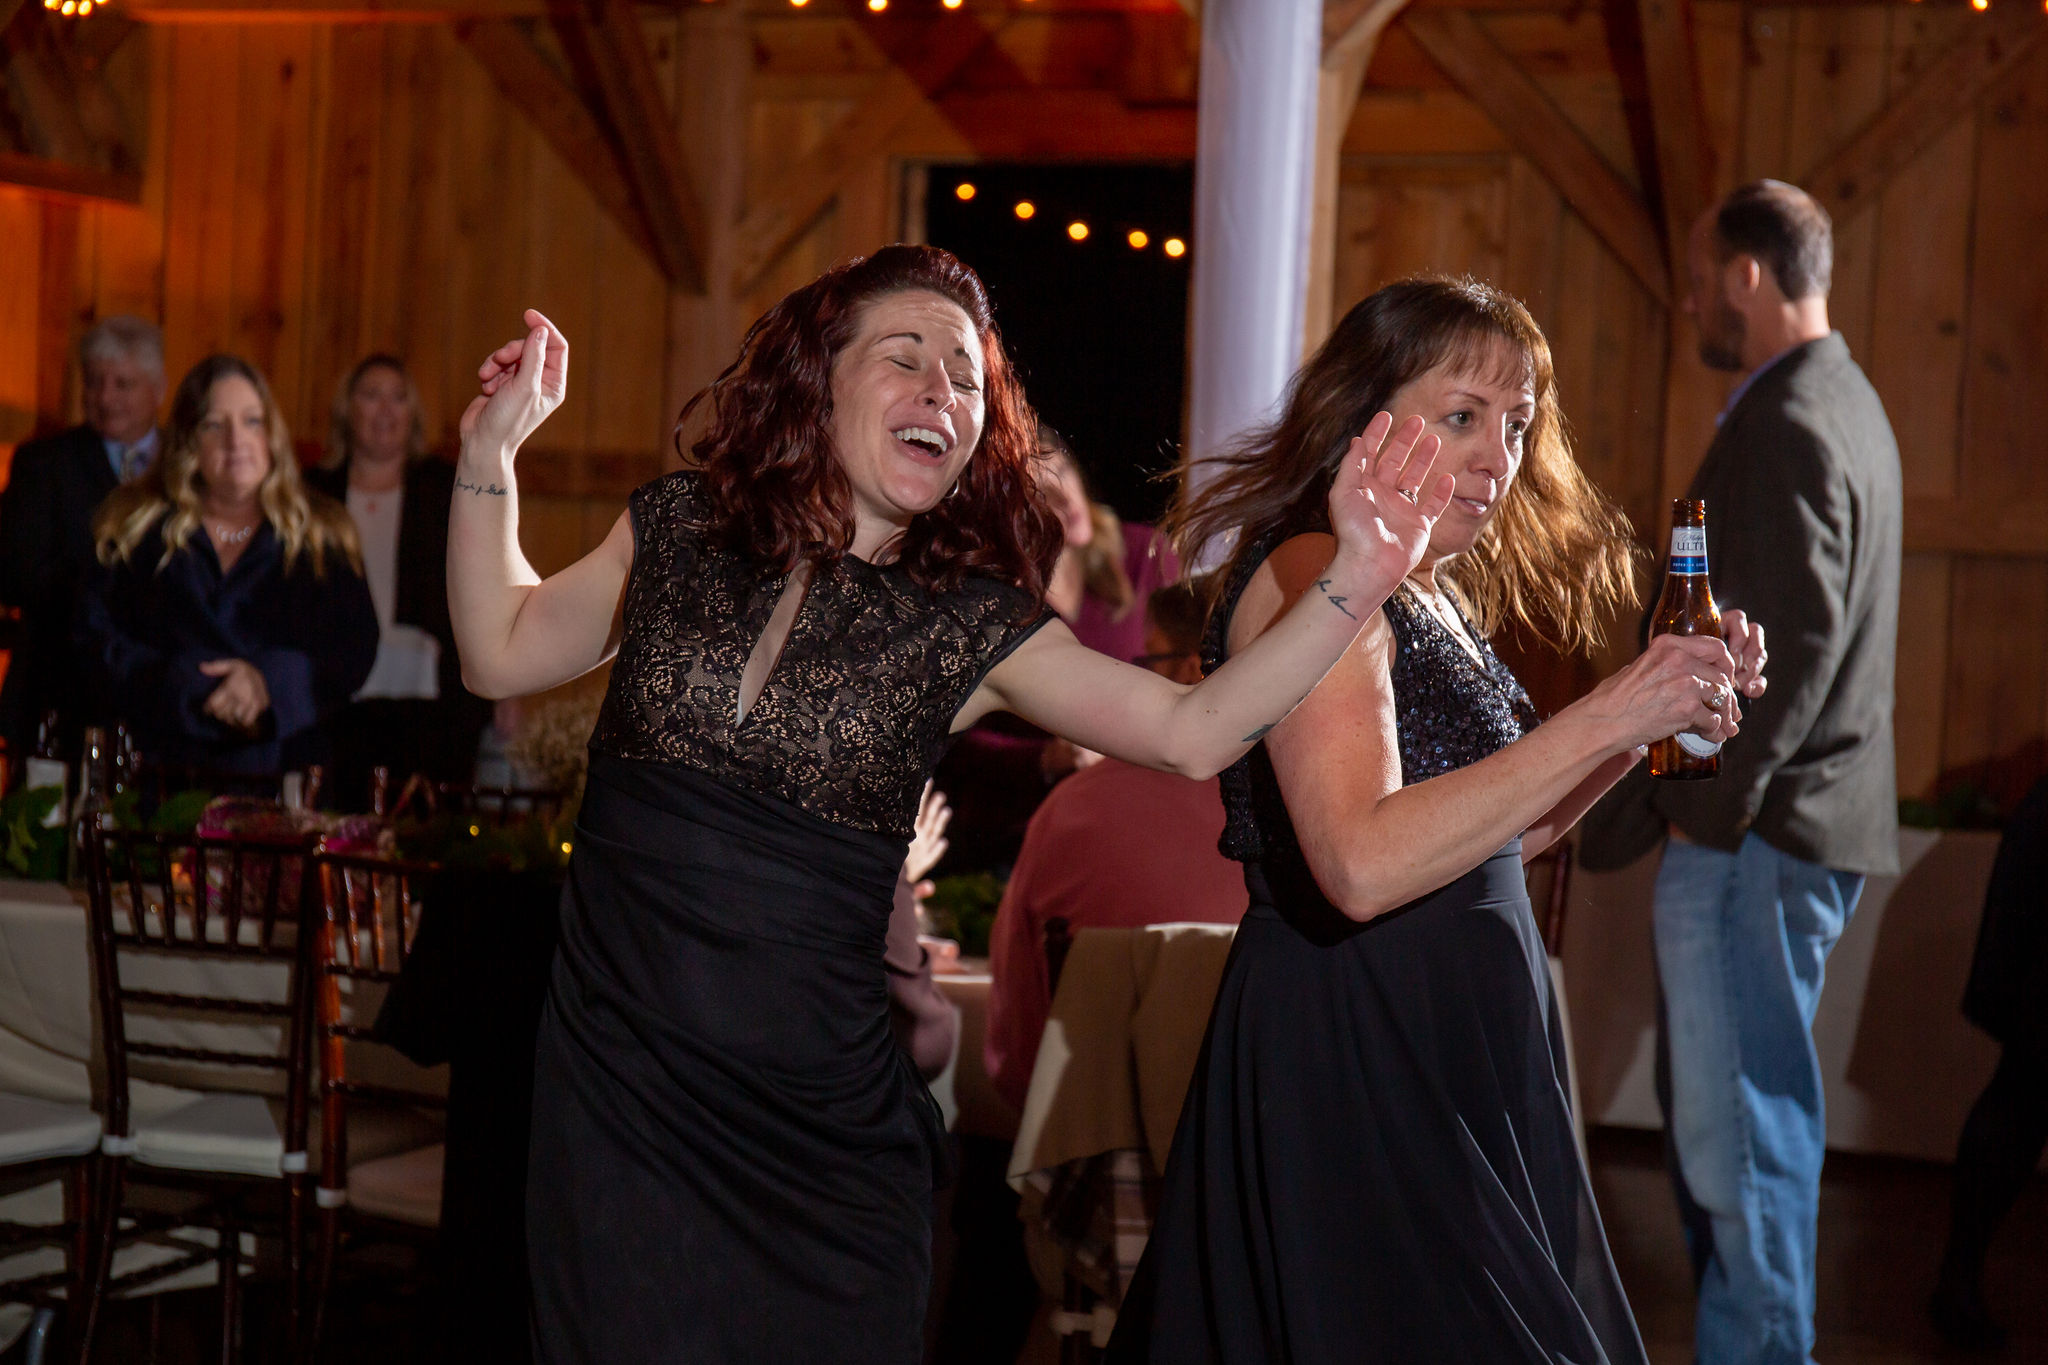 Some of the wedding guests breaking it down on the dance floor!